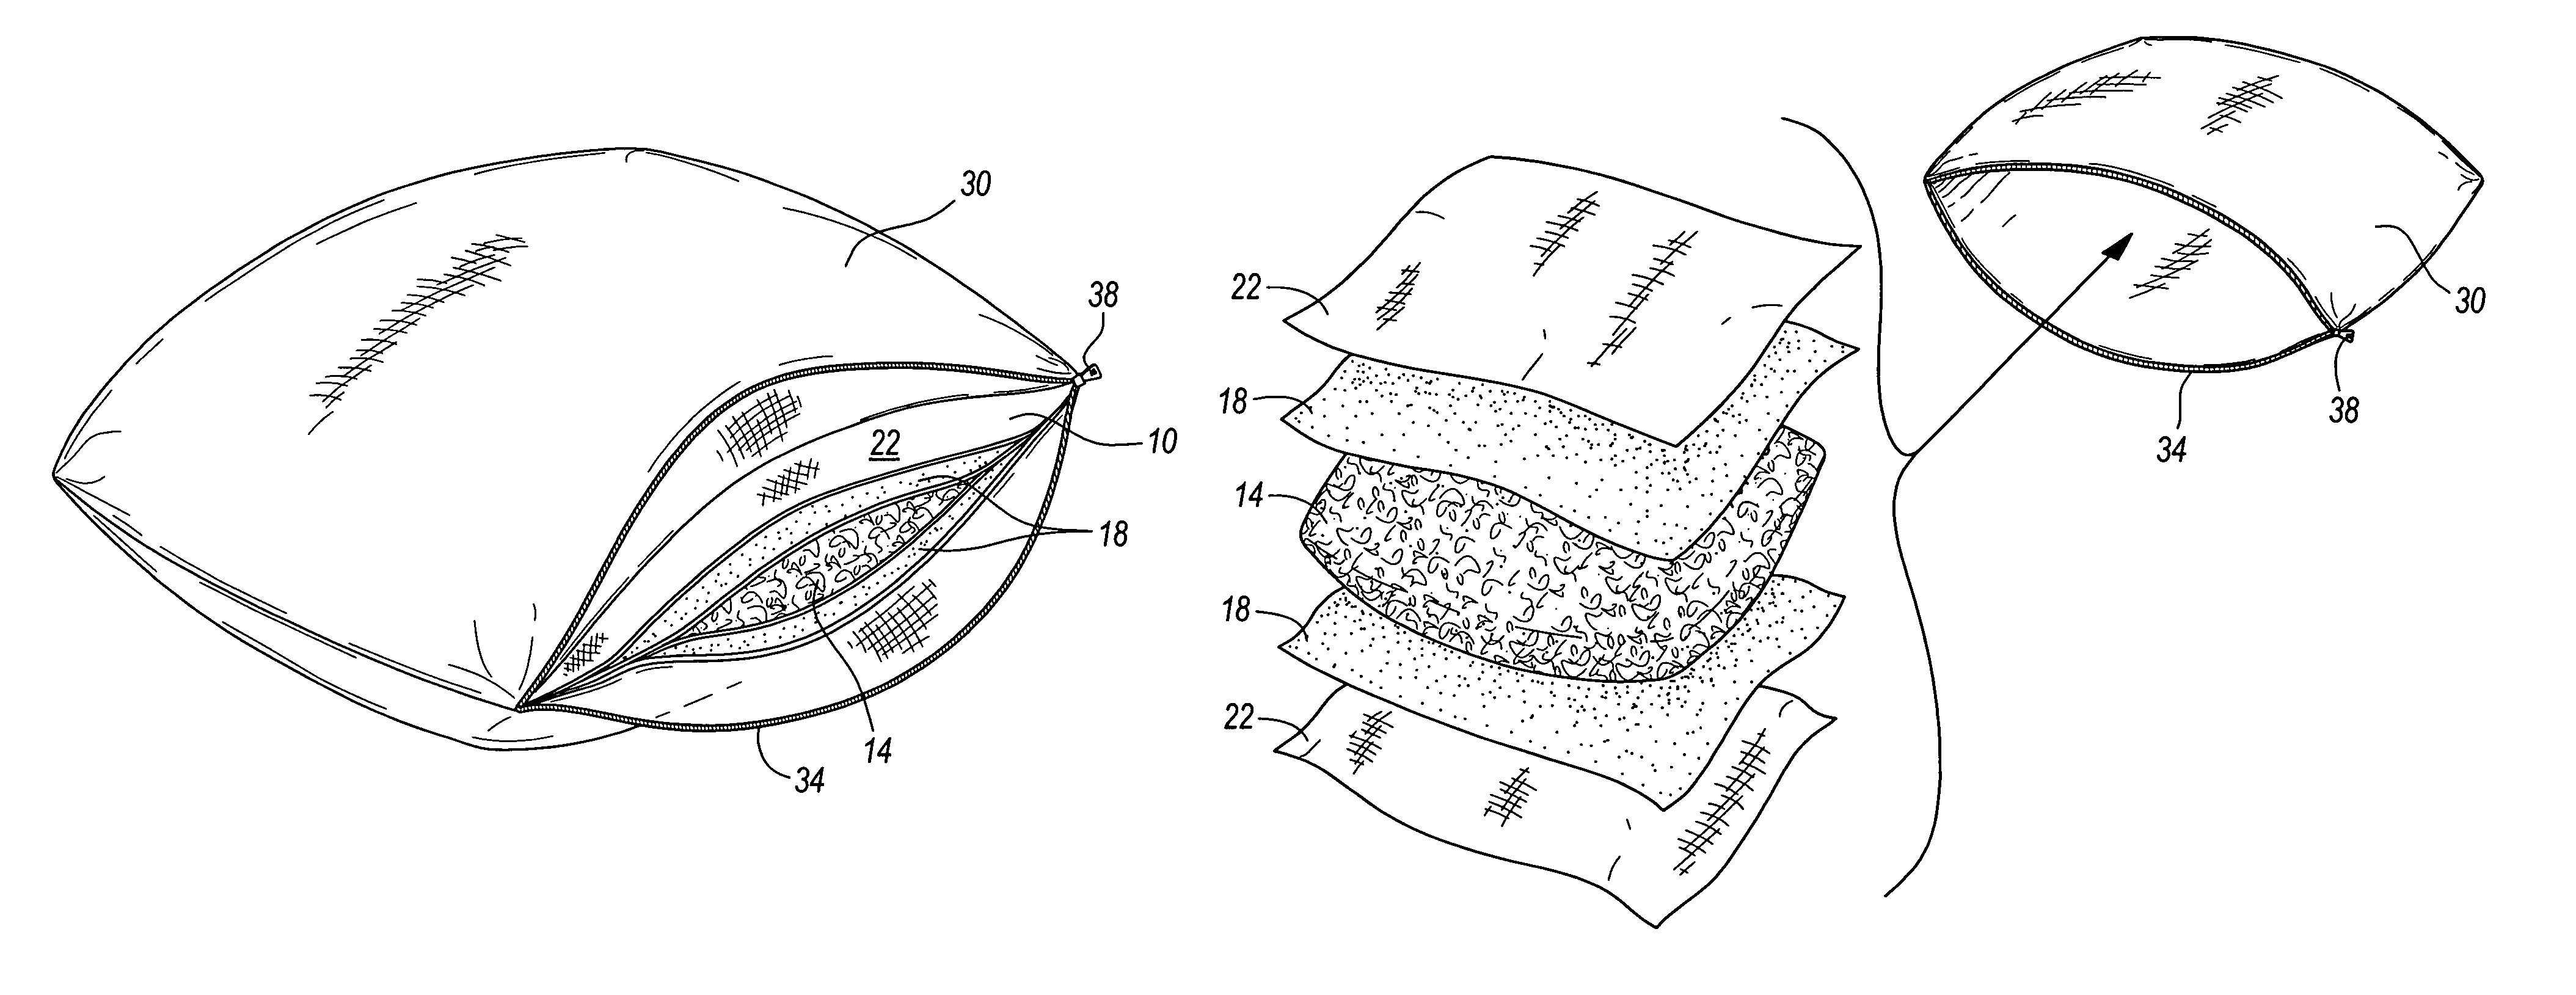 Patent US7051389 - Comfort pillow - Google Patents